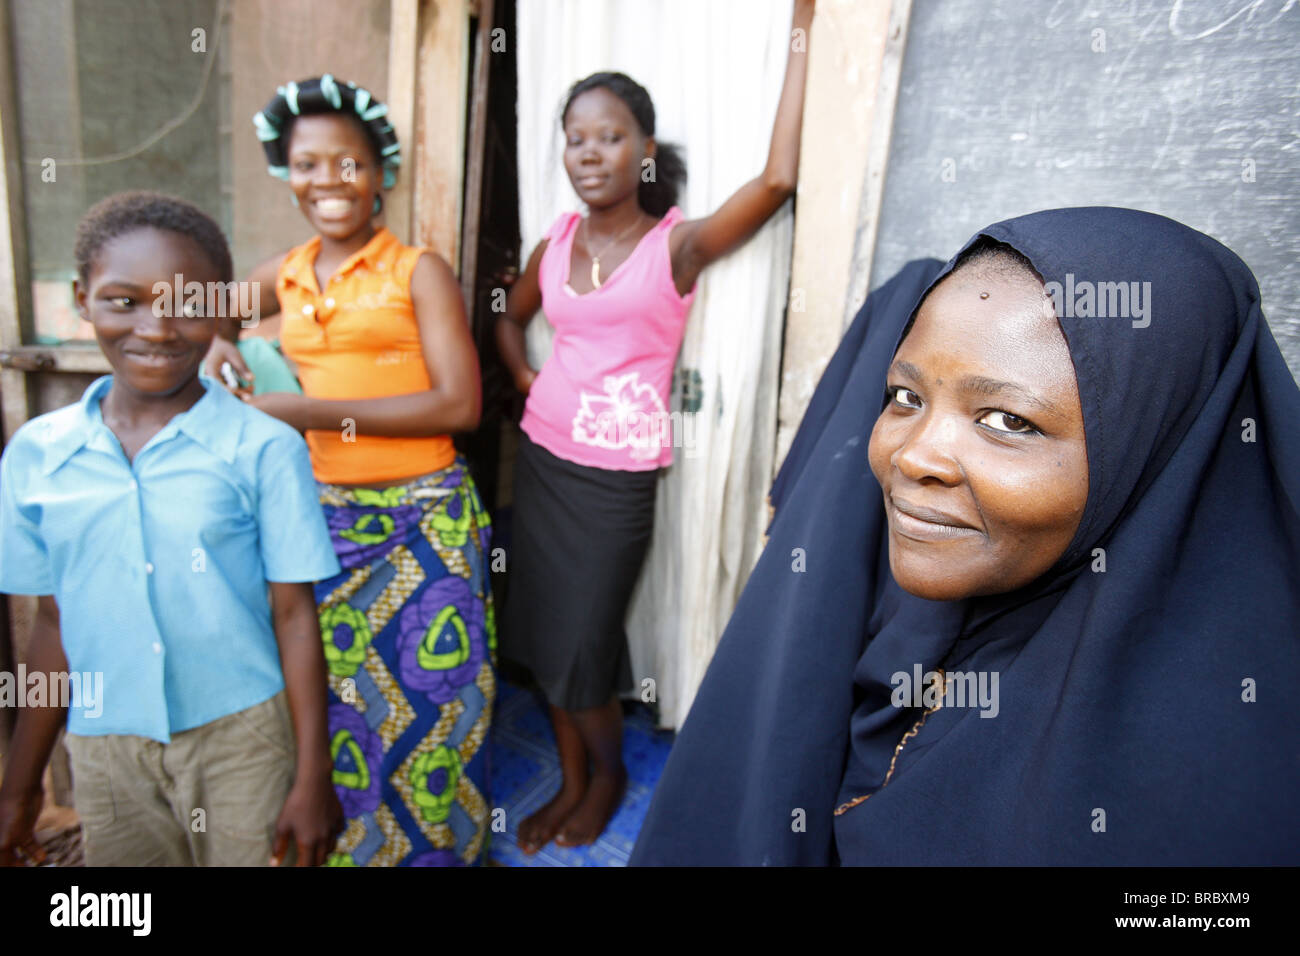 Muslim family, Lome, Togo, West Africa - Stock Image